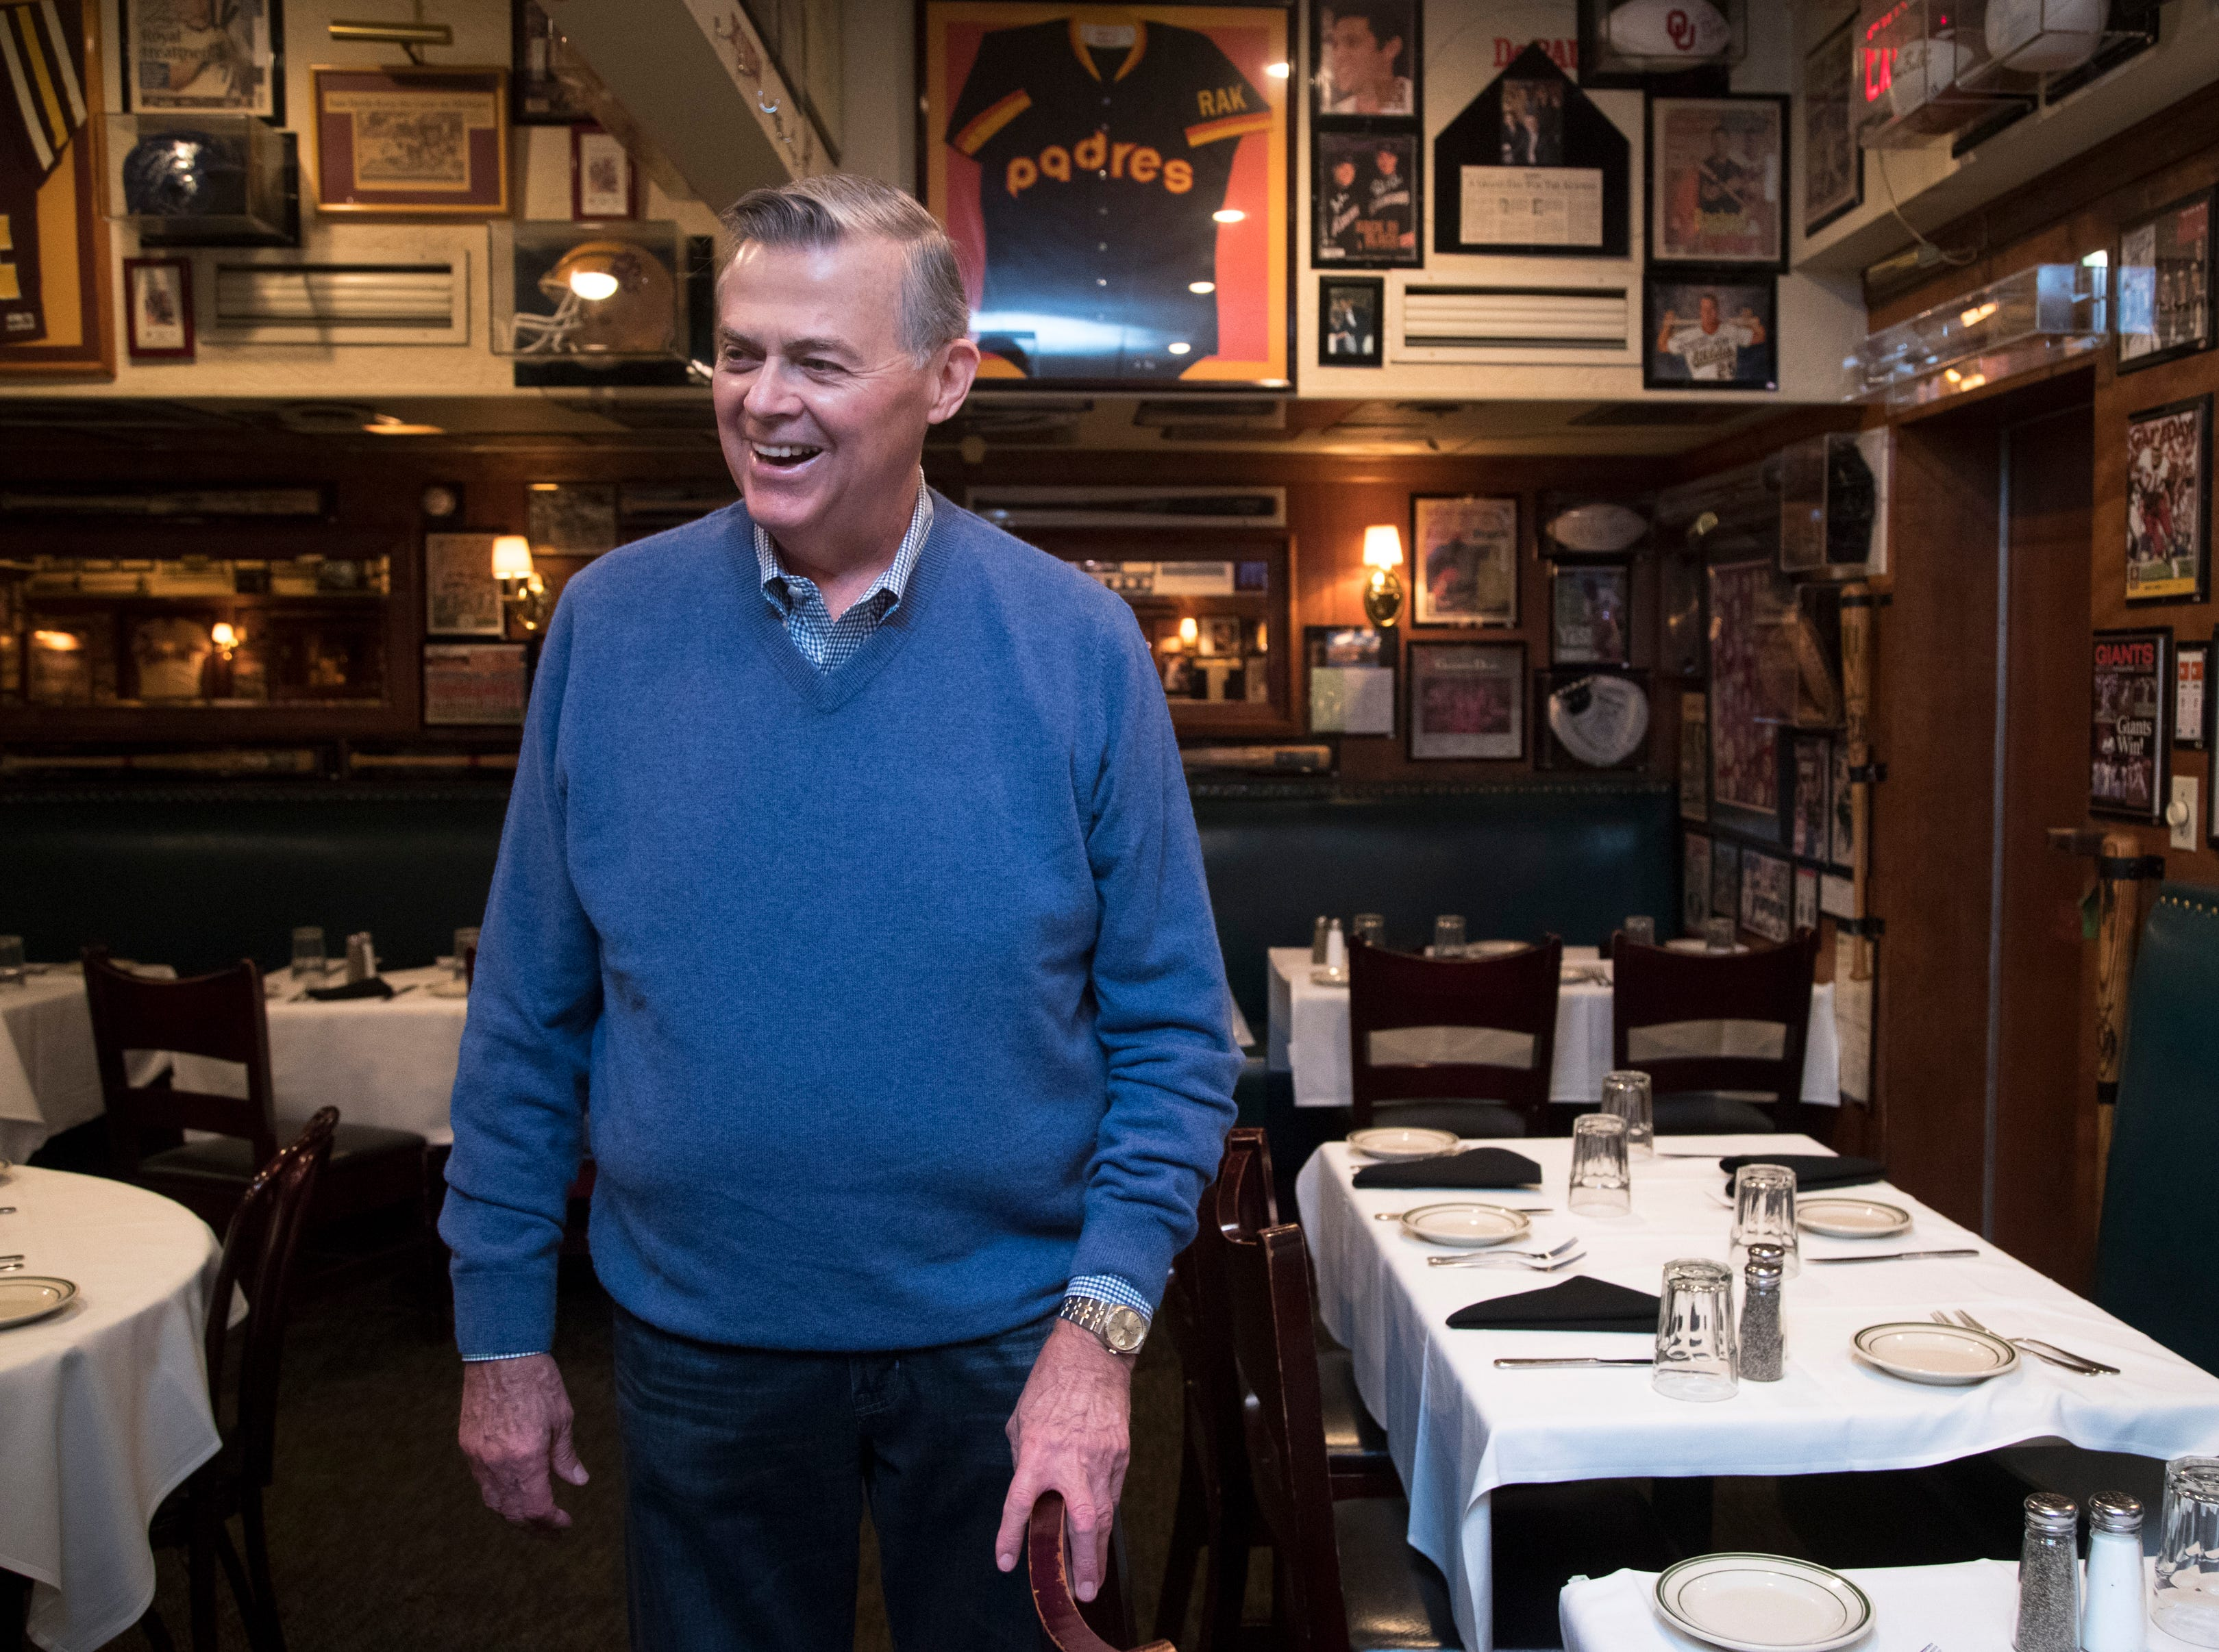 Don Carson reminisces Feb. 27, 2019, at Don & Charlie's, 7501 E. Camelback Road, Scottsdale.